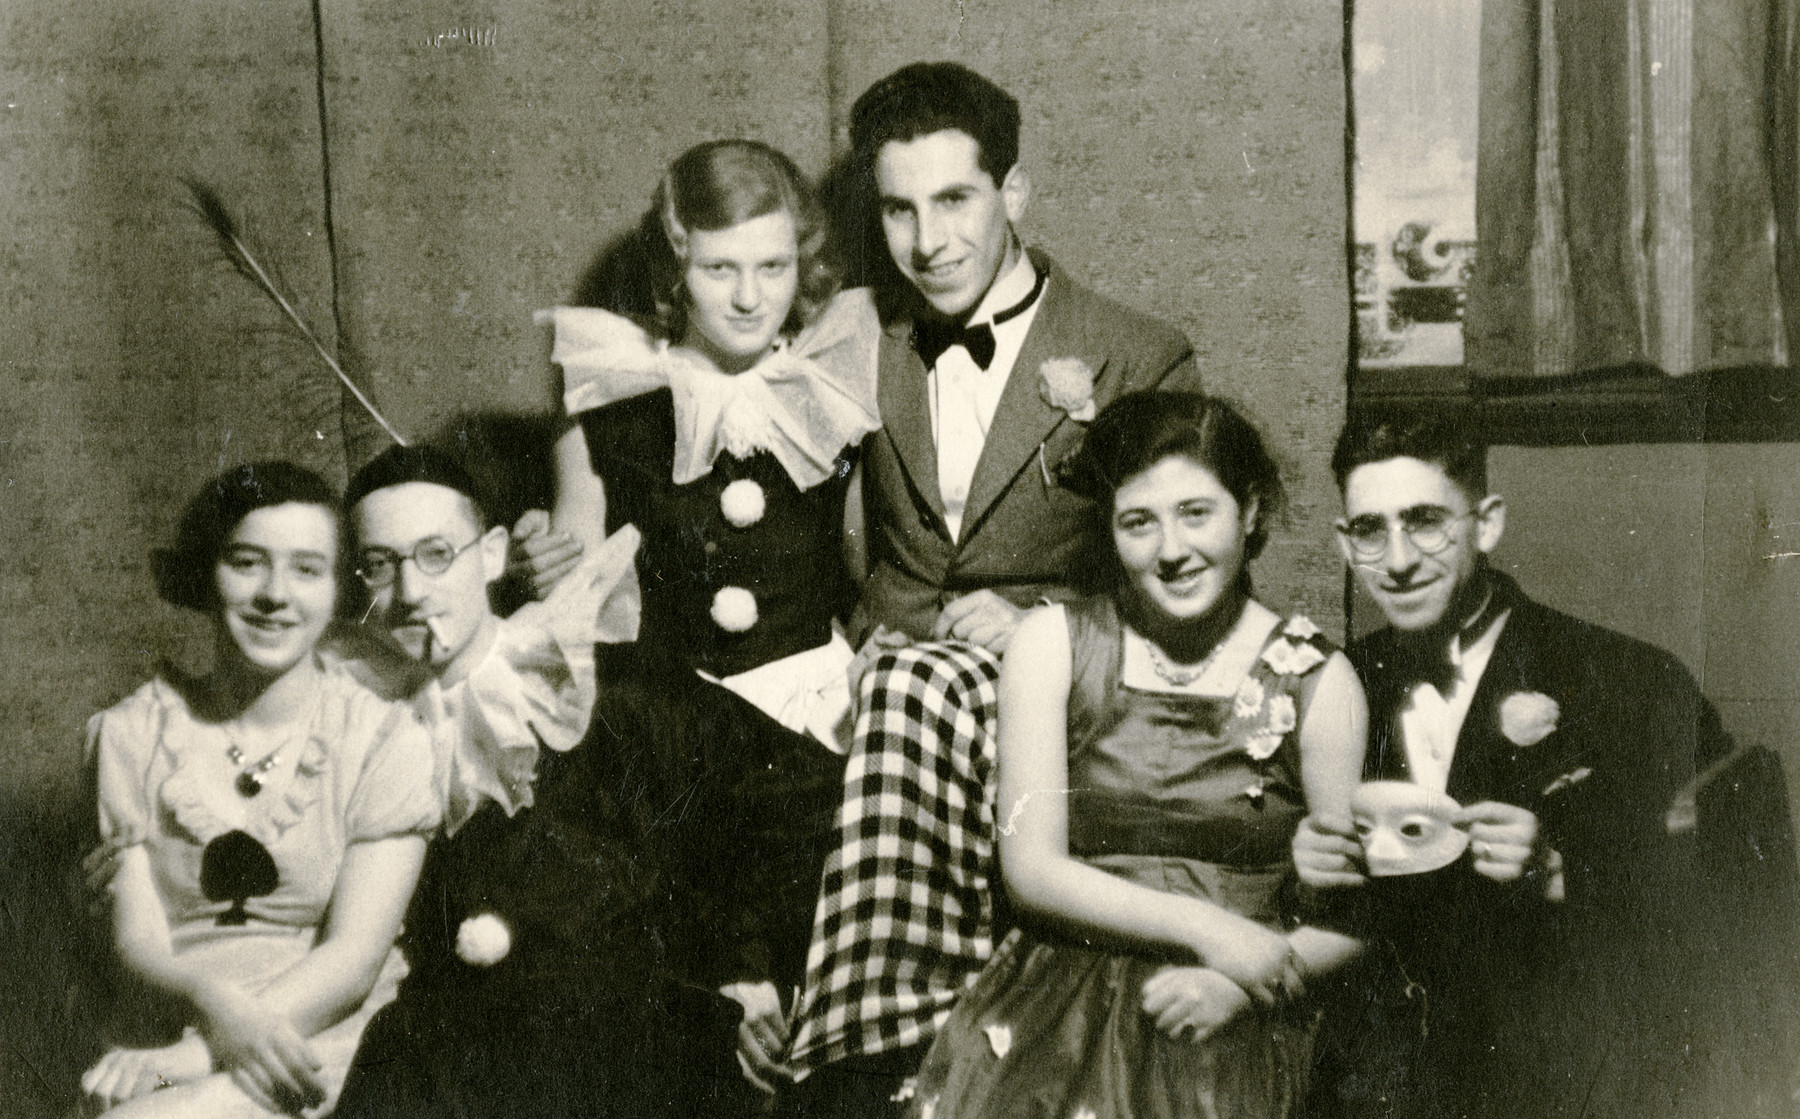 Three young Dutch Jewish couples celebrate Purim in prewar Holland.  Pictured are Ammy and Nico Herschel (left), Ammy's sister Bilha and her husband, Aaron Davidon (center), and unidentified friends.  Aaron Davidson perished during the war.